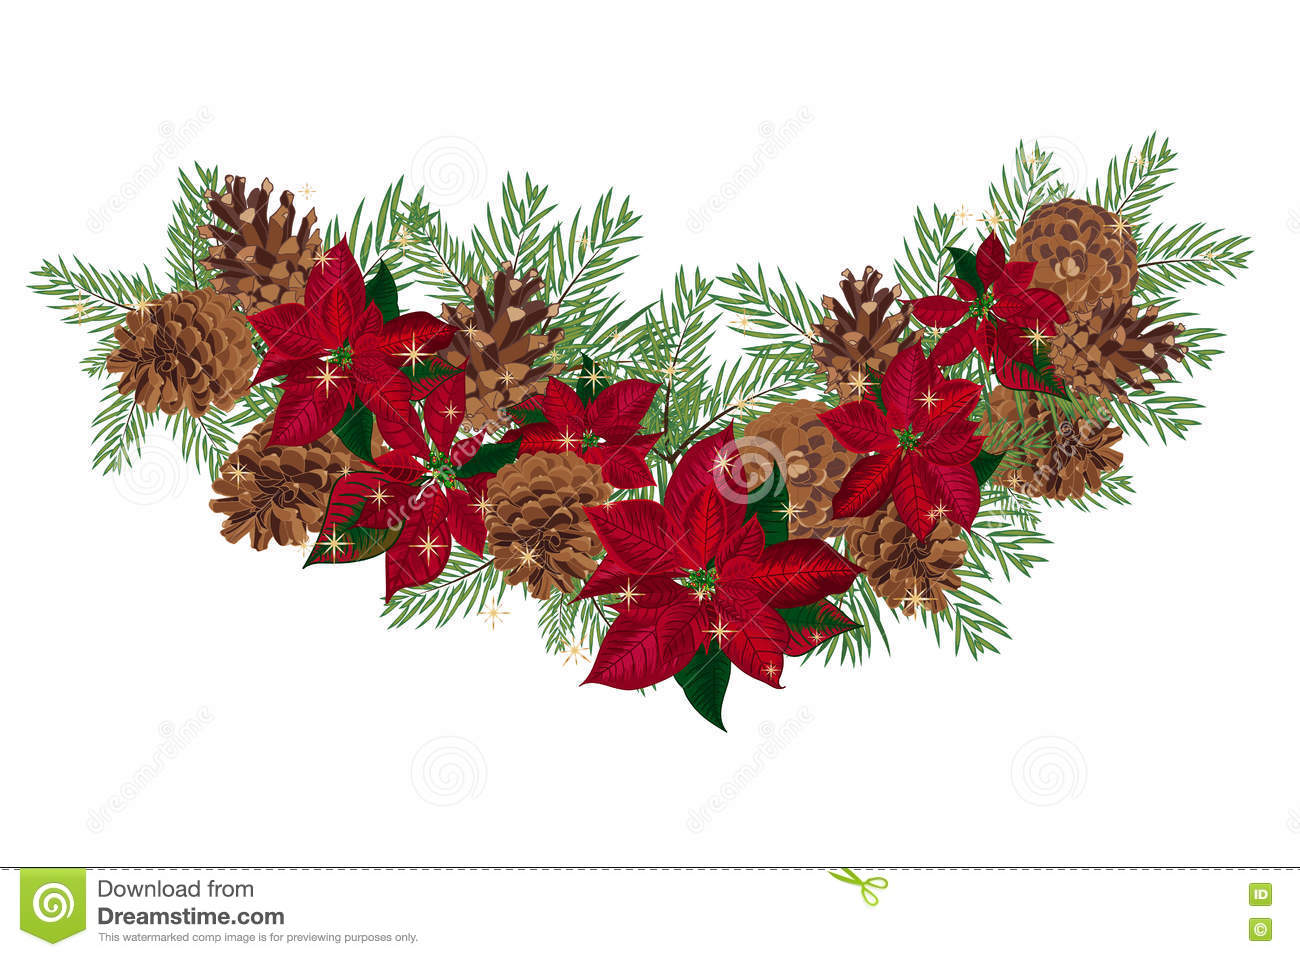 Vintage Christmas Garland With Pine Cones And Poinsettia Isolated On